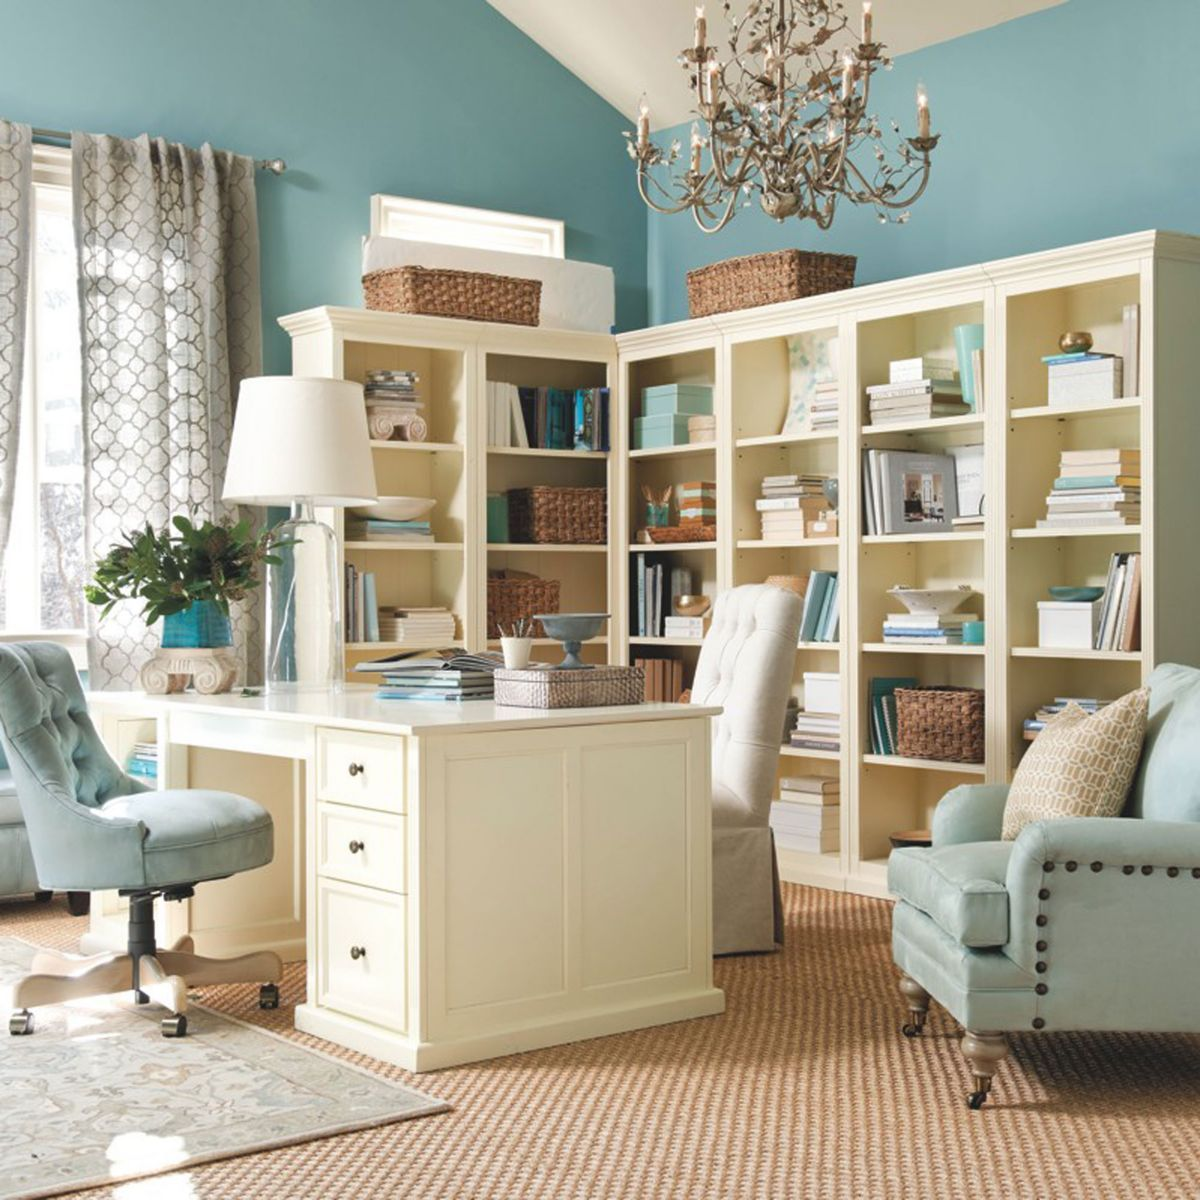 Modern Furniture Modern Study Room Furnitures Designs Ideas: Office Furniture Ballard Designs